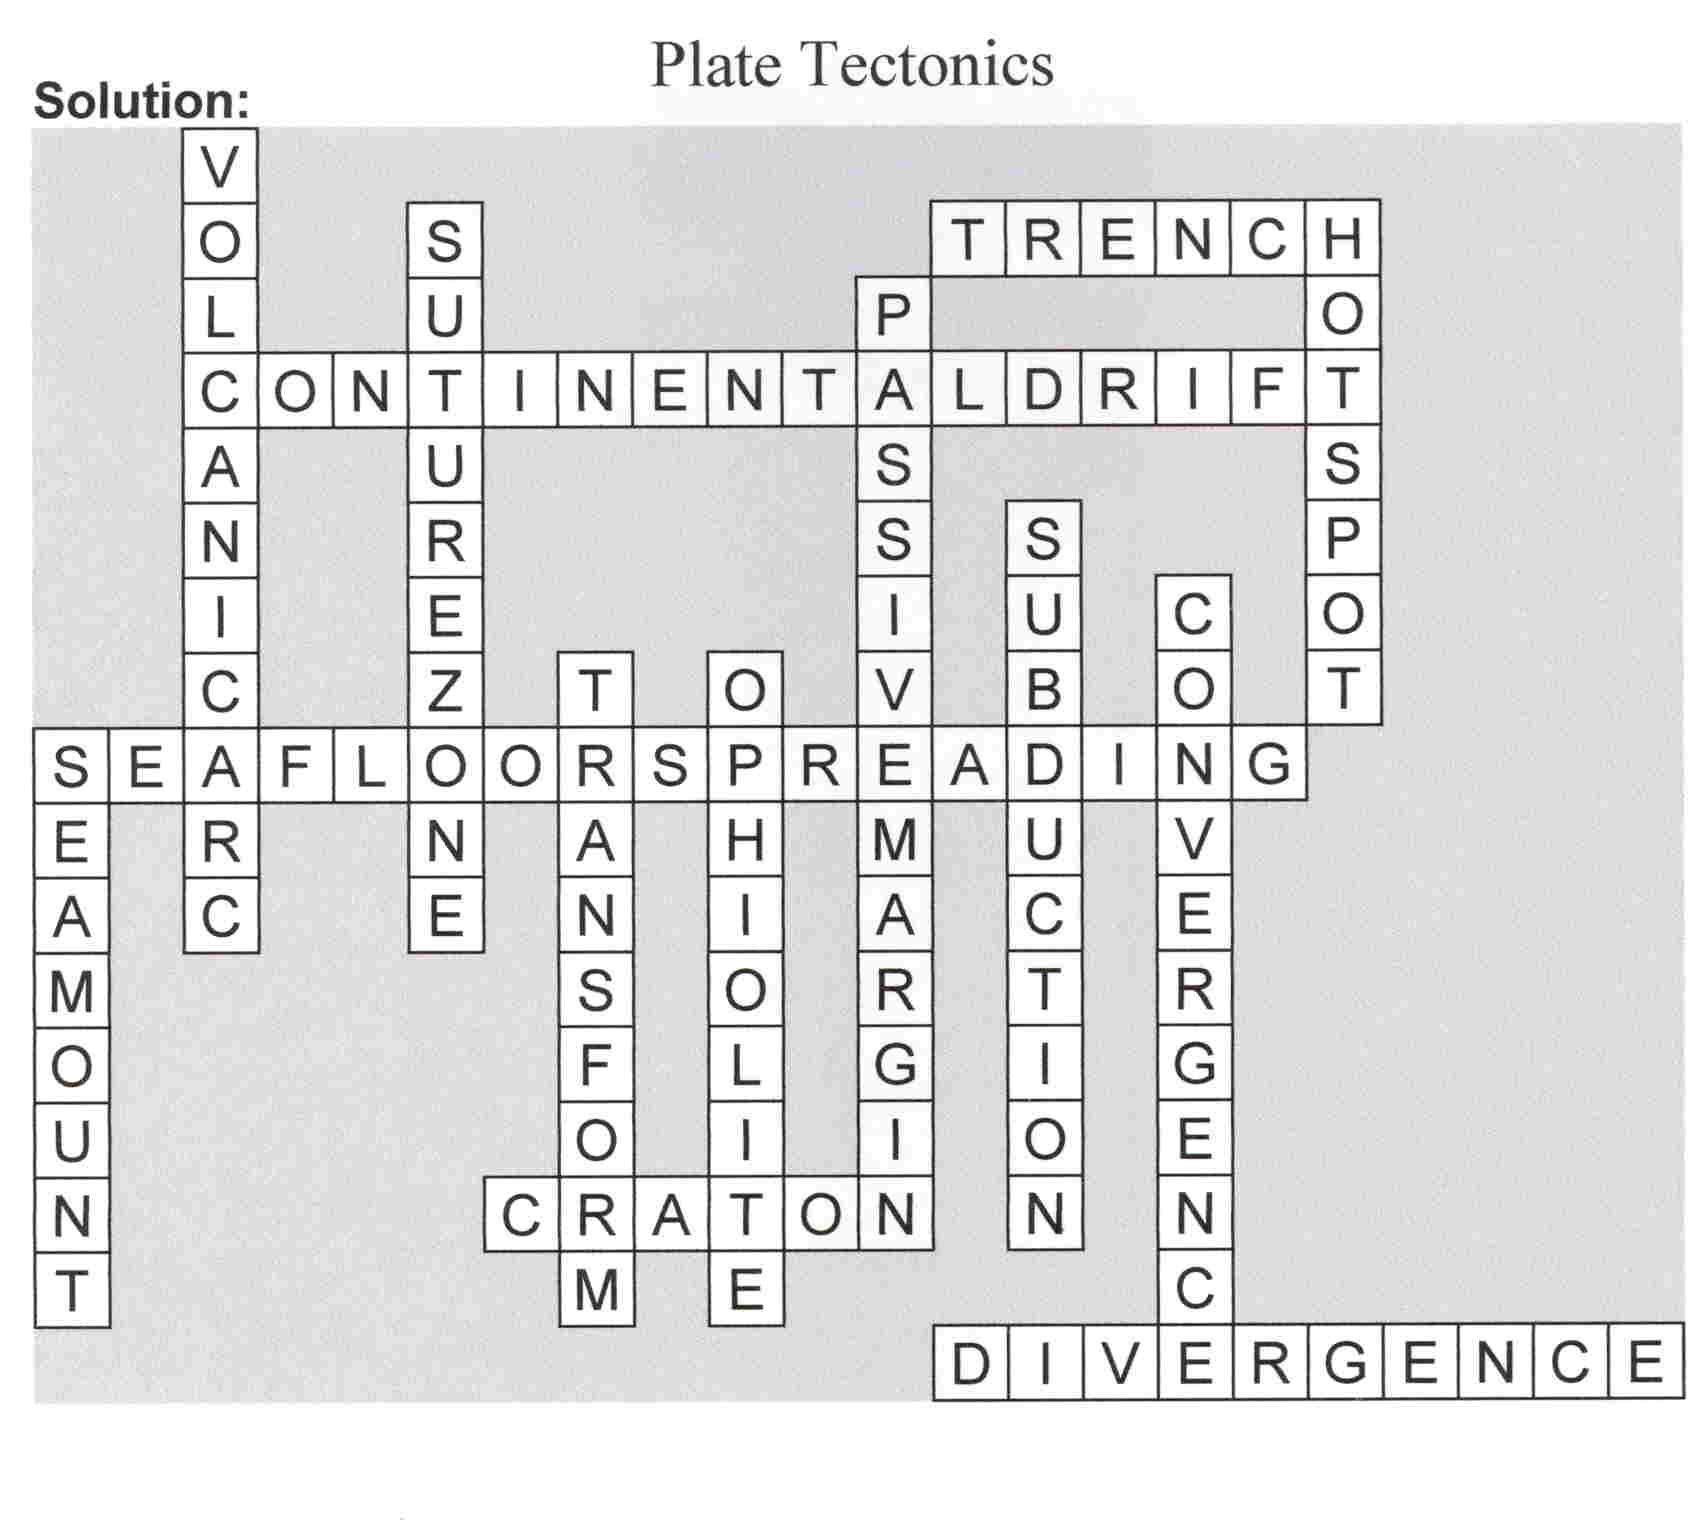 Awesome plate tectonics crossword puzzle – Plate Boundaries Worksheet Answers